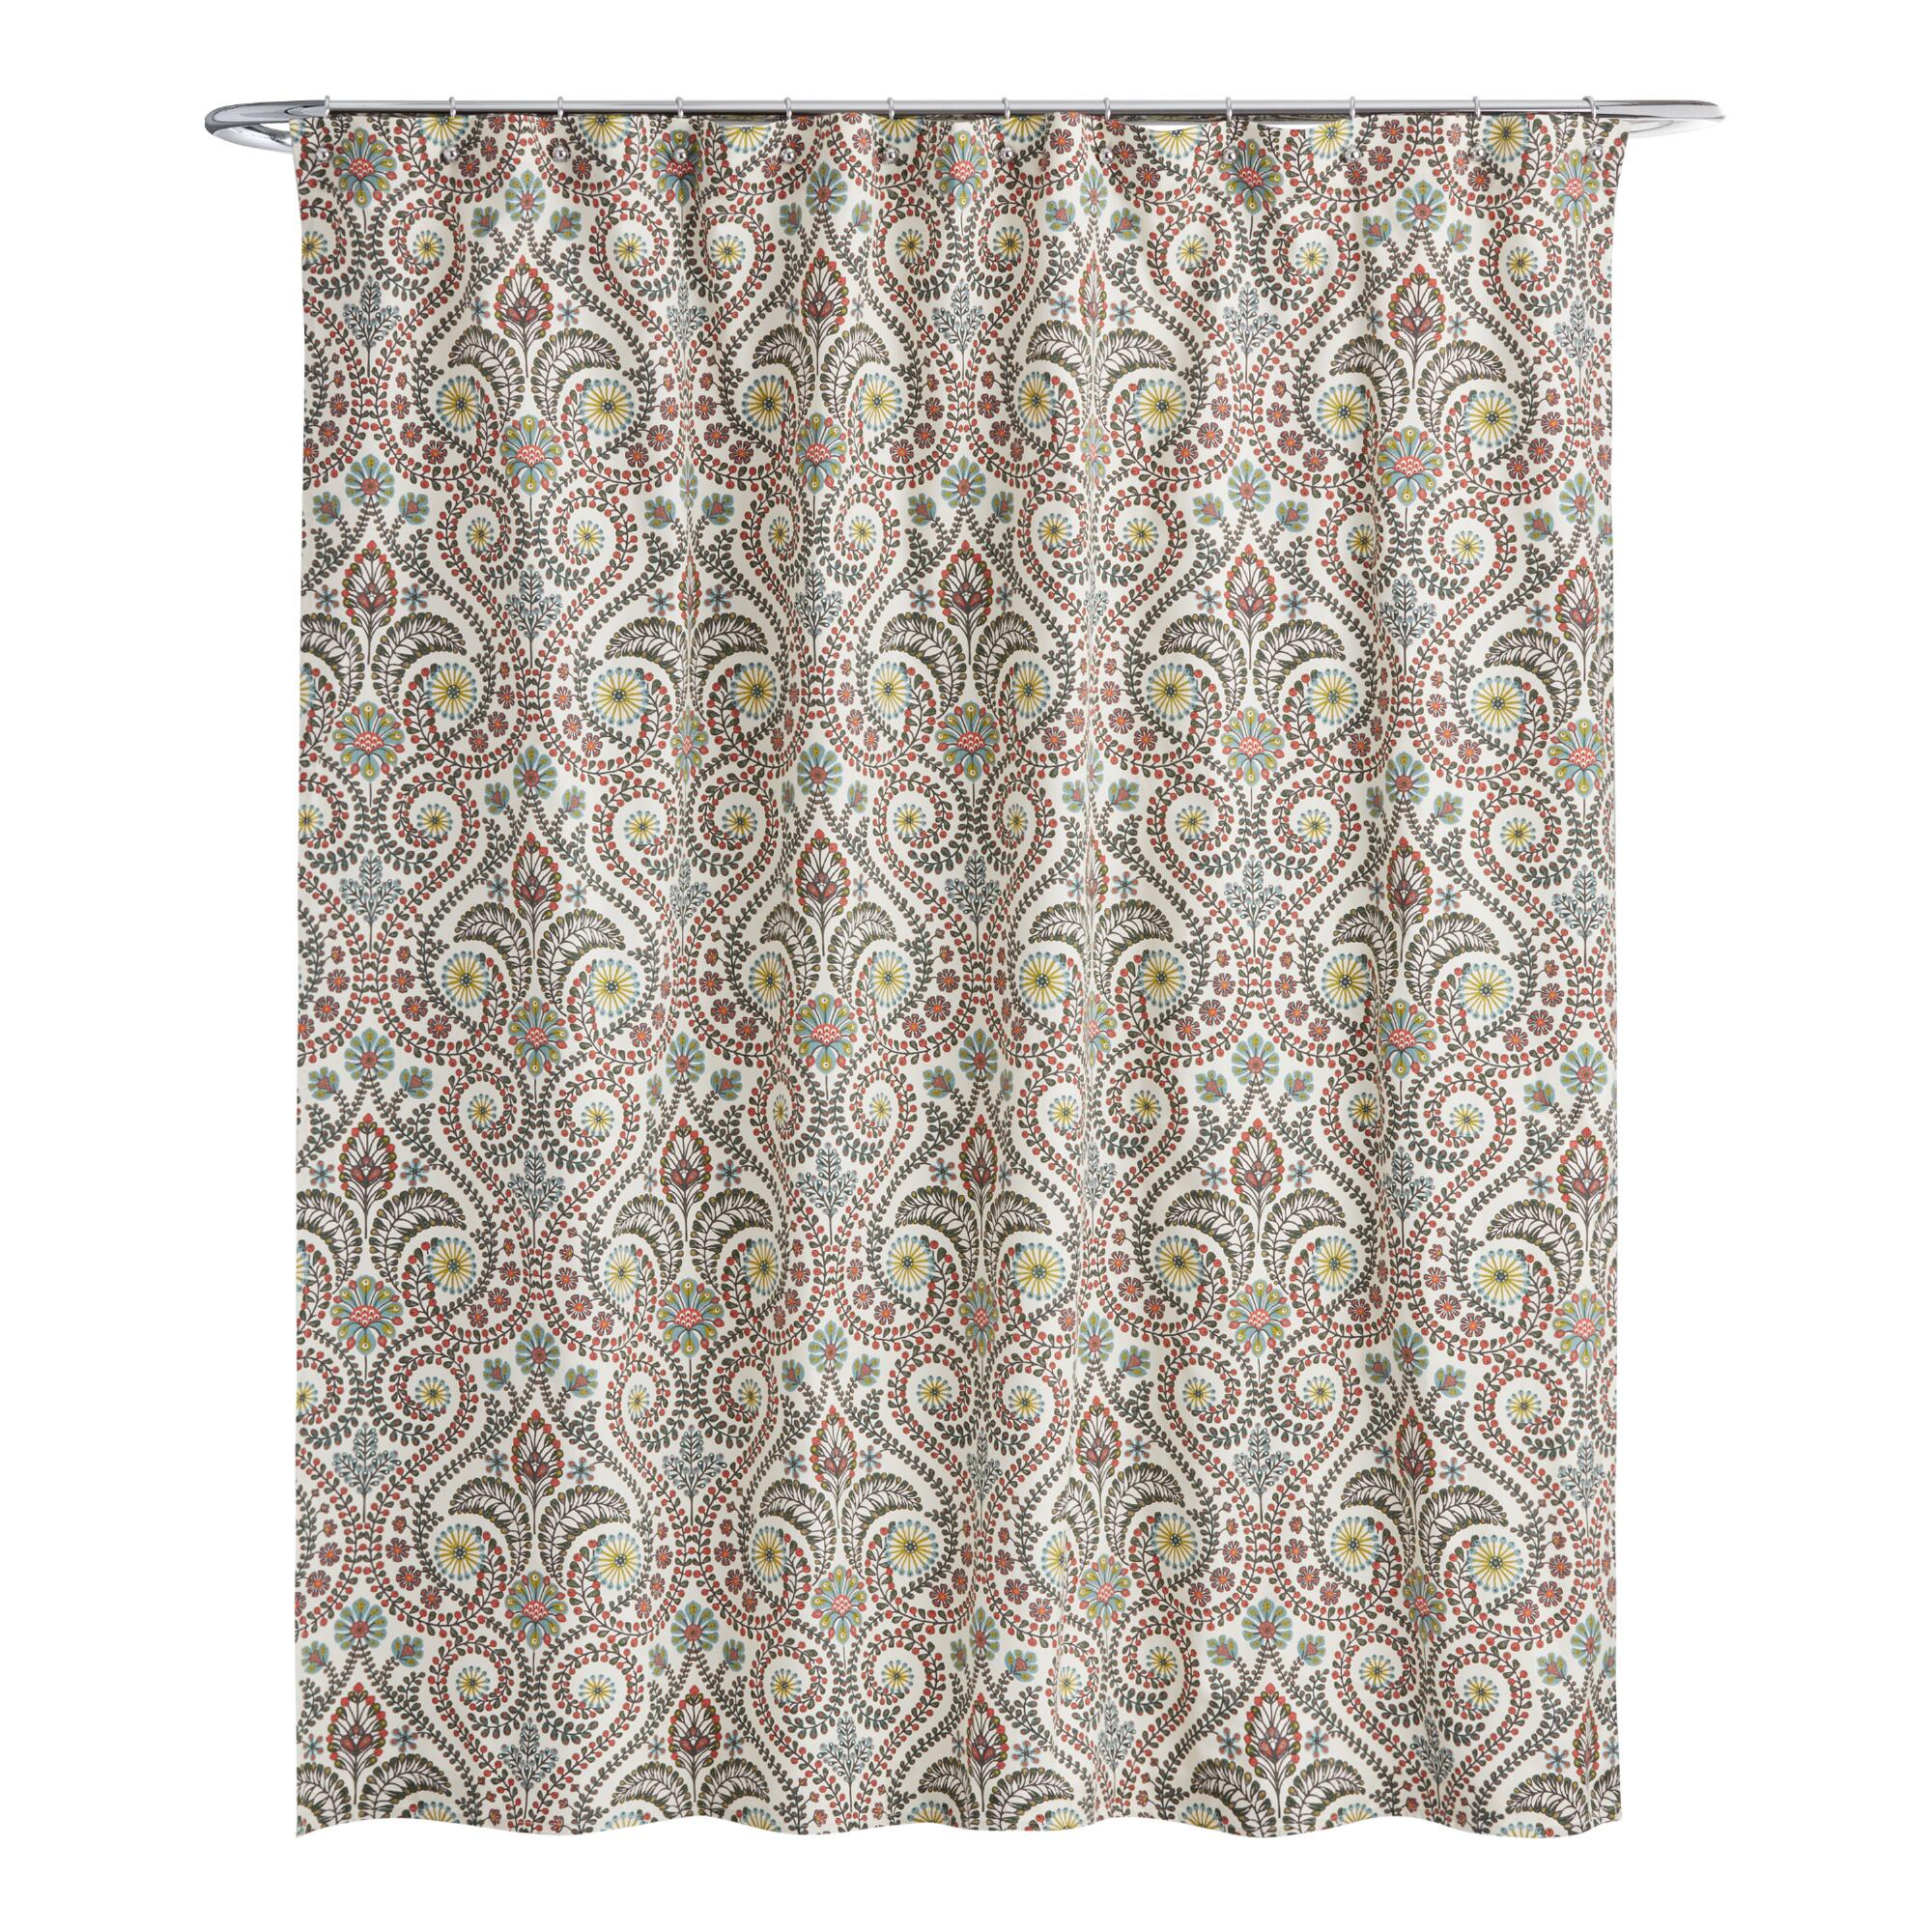 curtainspink curtains full curtain photo and elegant gray class dillards touch j concept queen size pink of damask shower york galileo incredible new